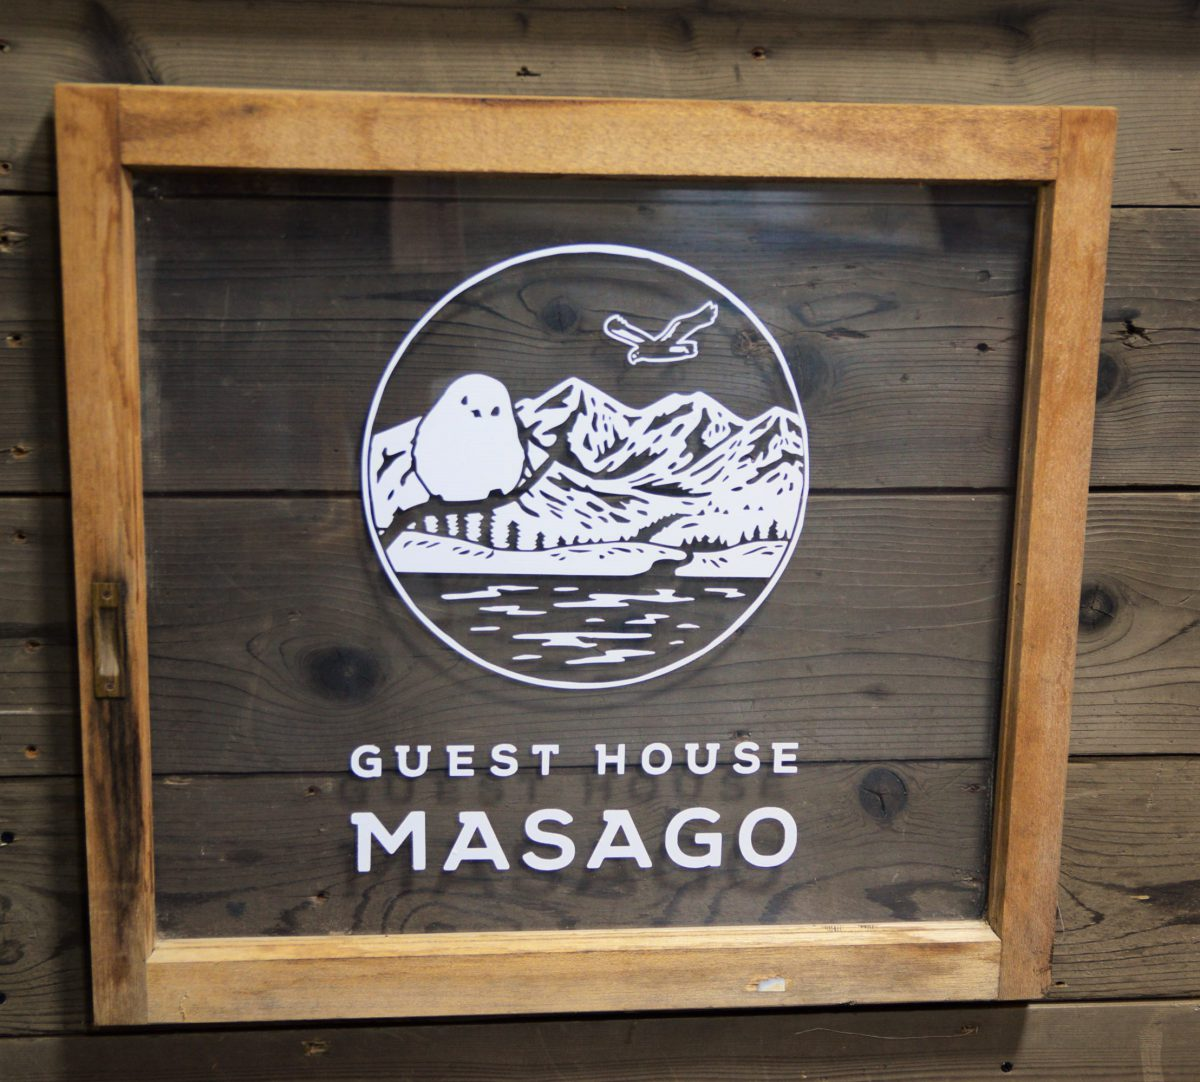 GUEST HOUSE MasagoがOPENしました!